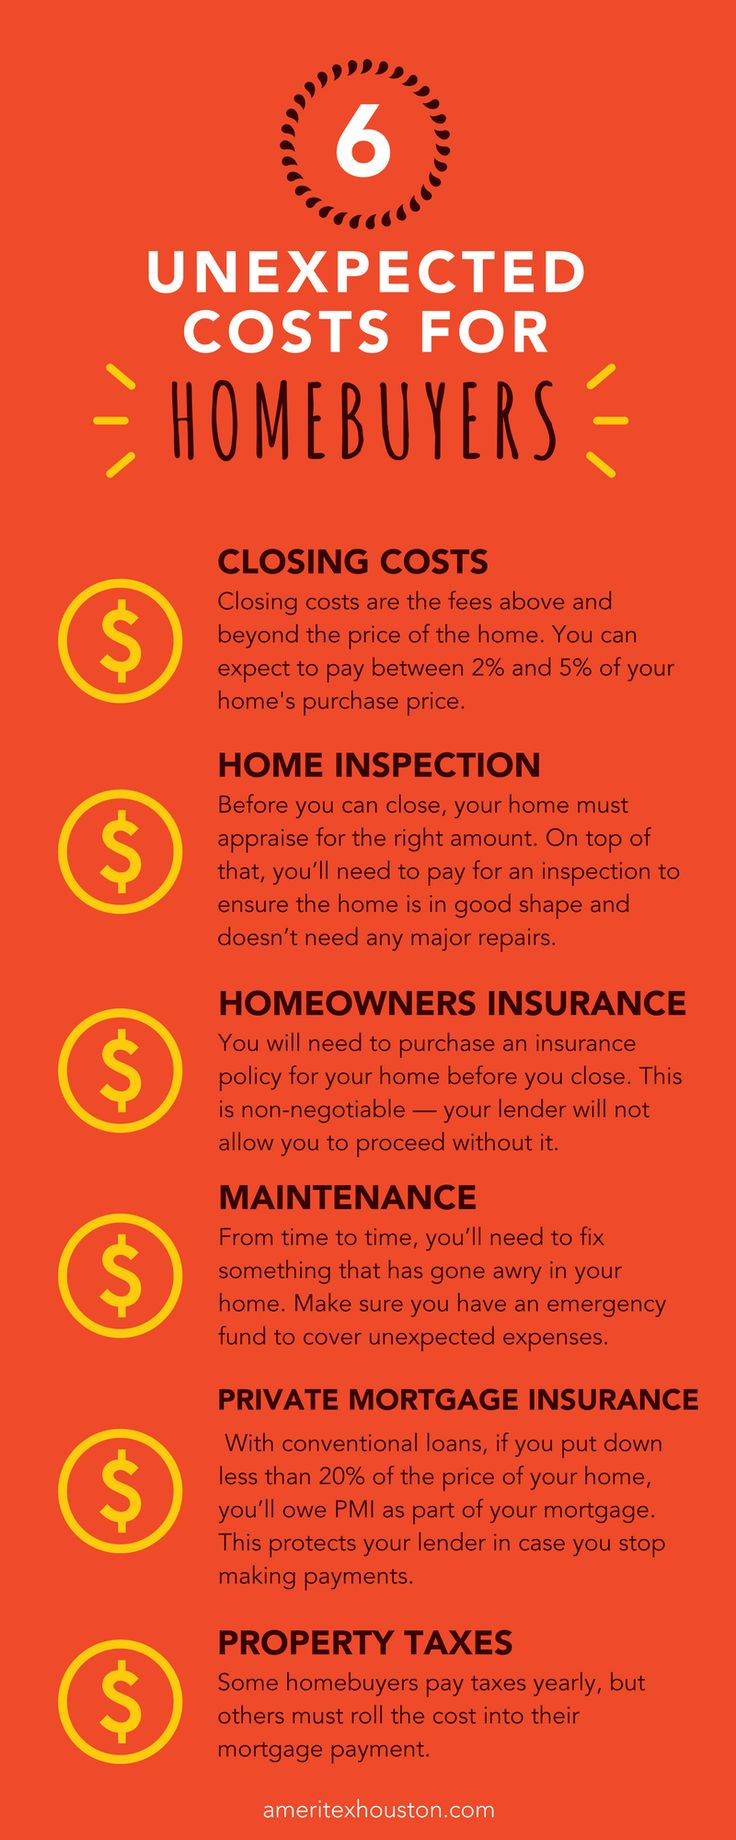 Unexpected Costs For Homebuyers